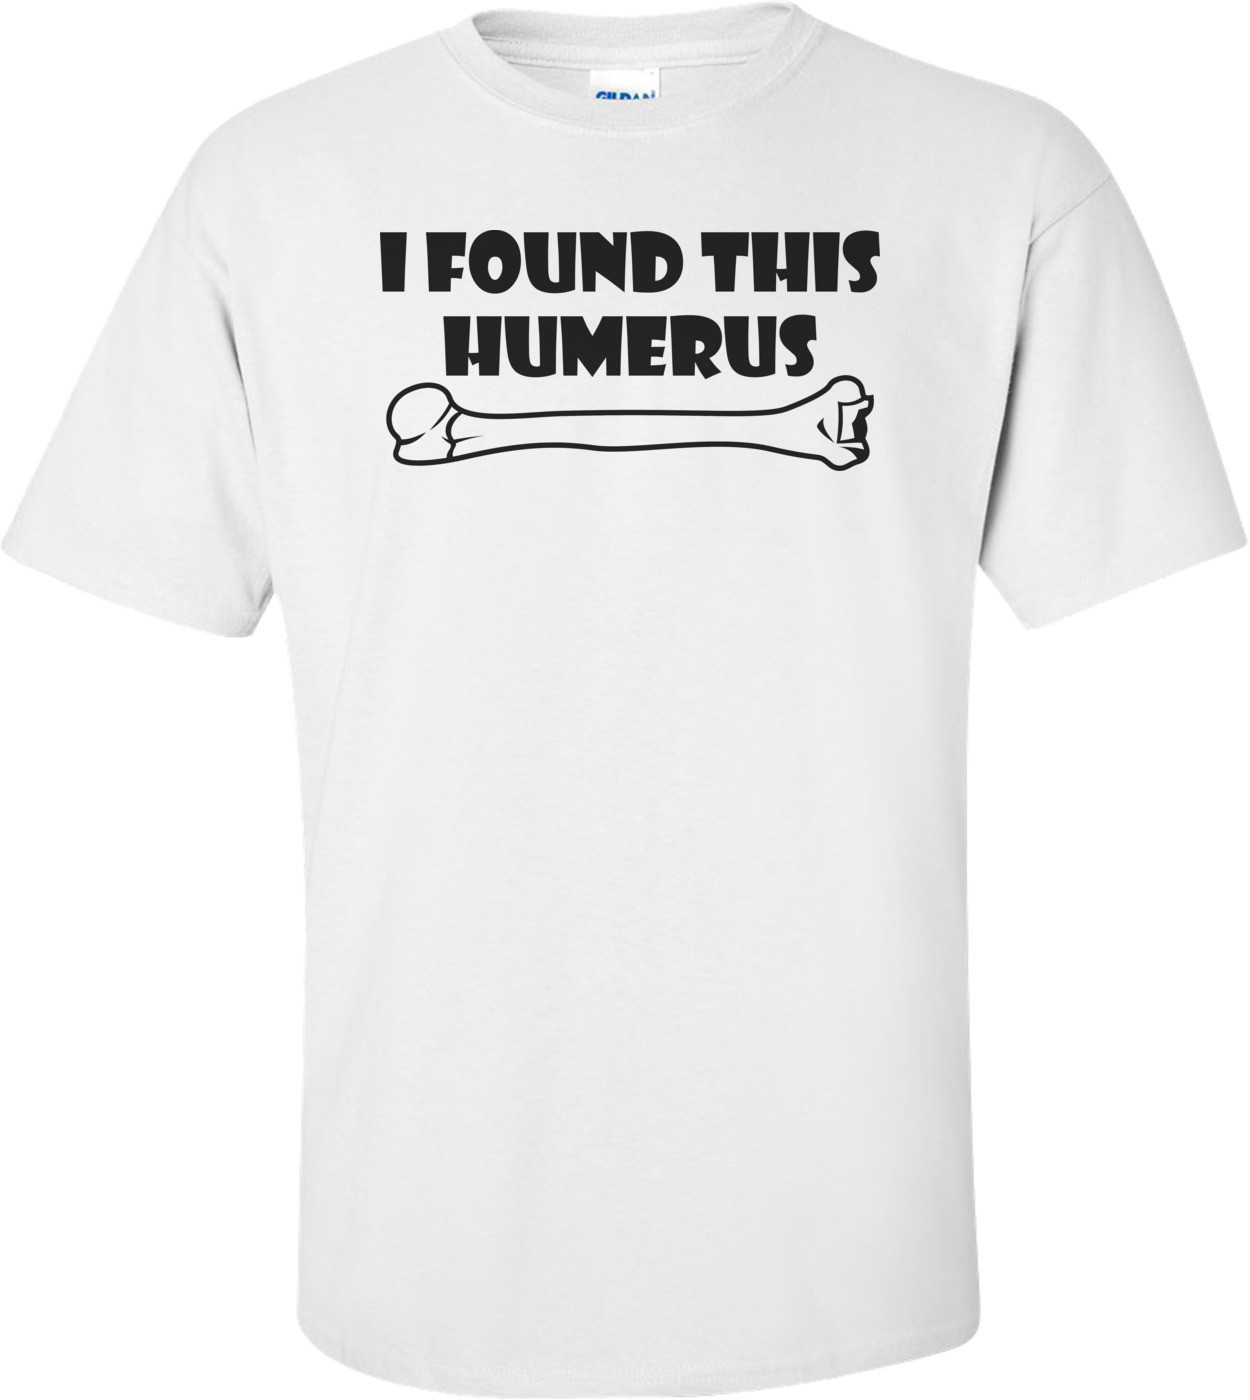 I Found This Humerus Funny Shirt